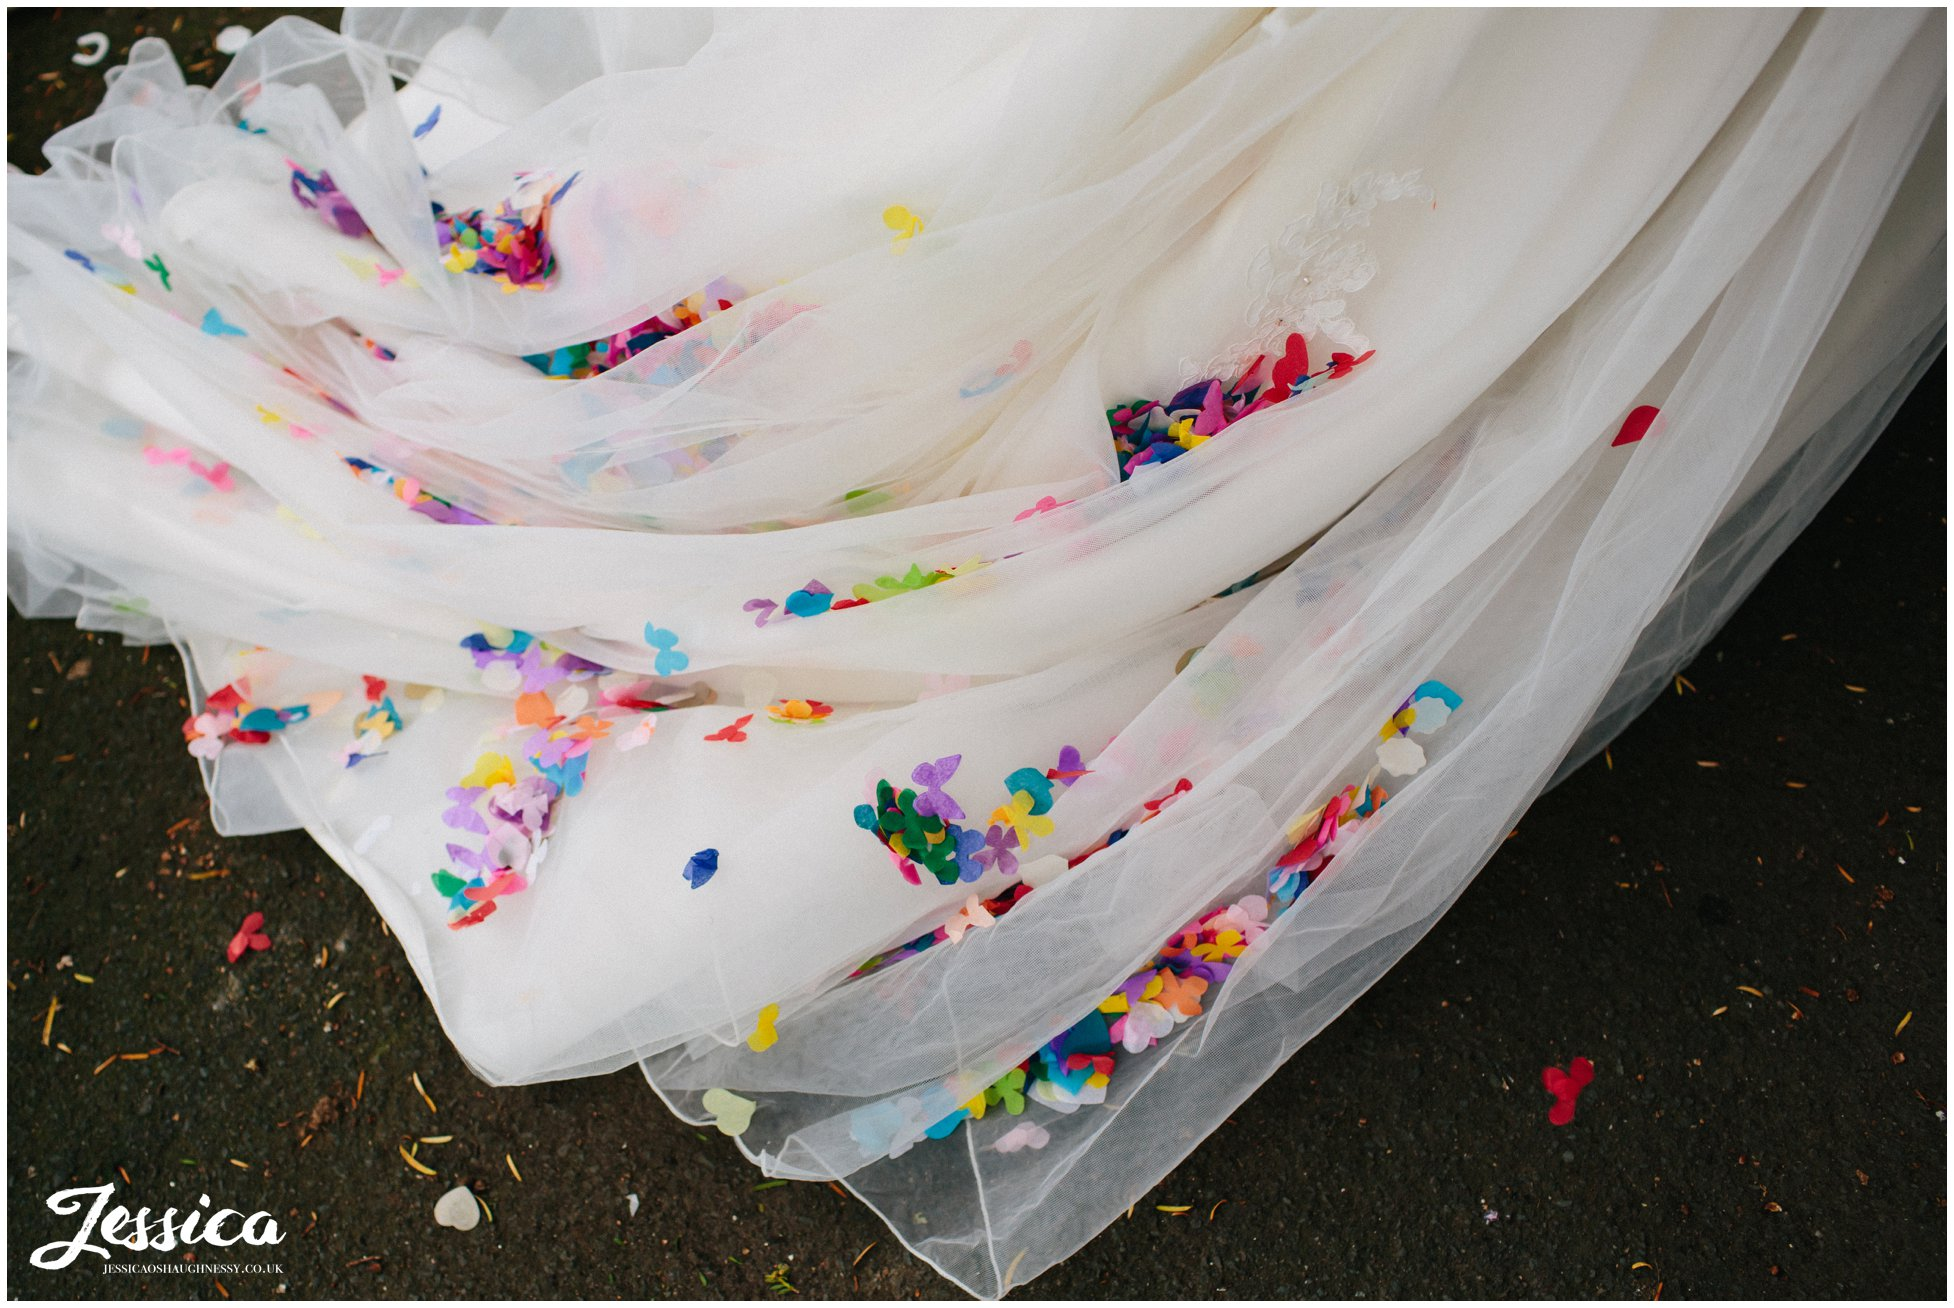 colourful confetti on the brides dress at her wedding in cheshire